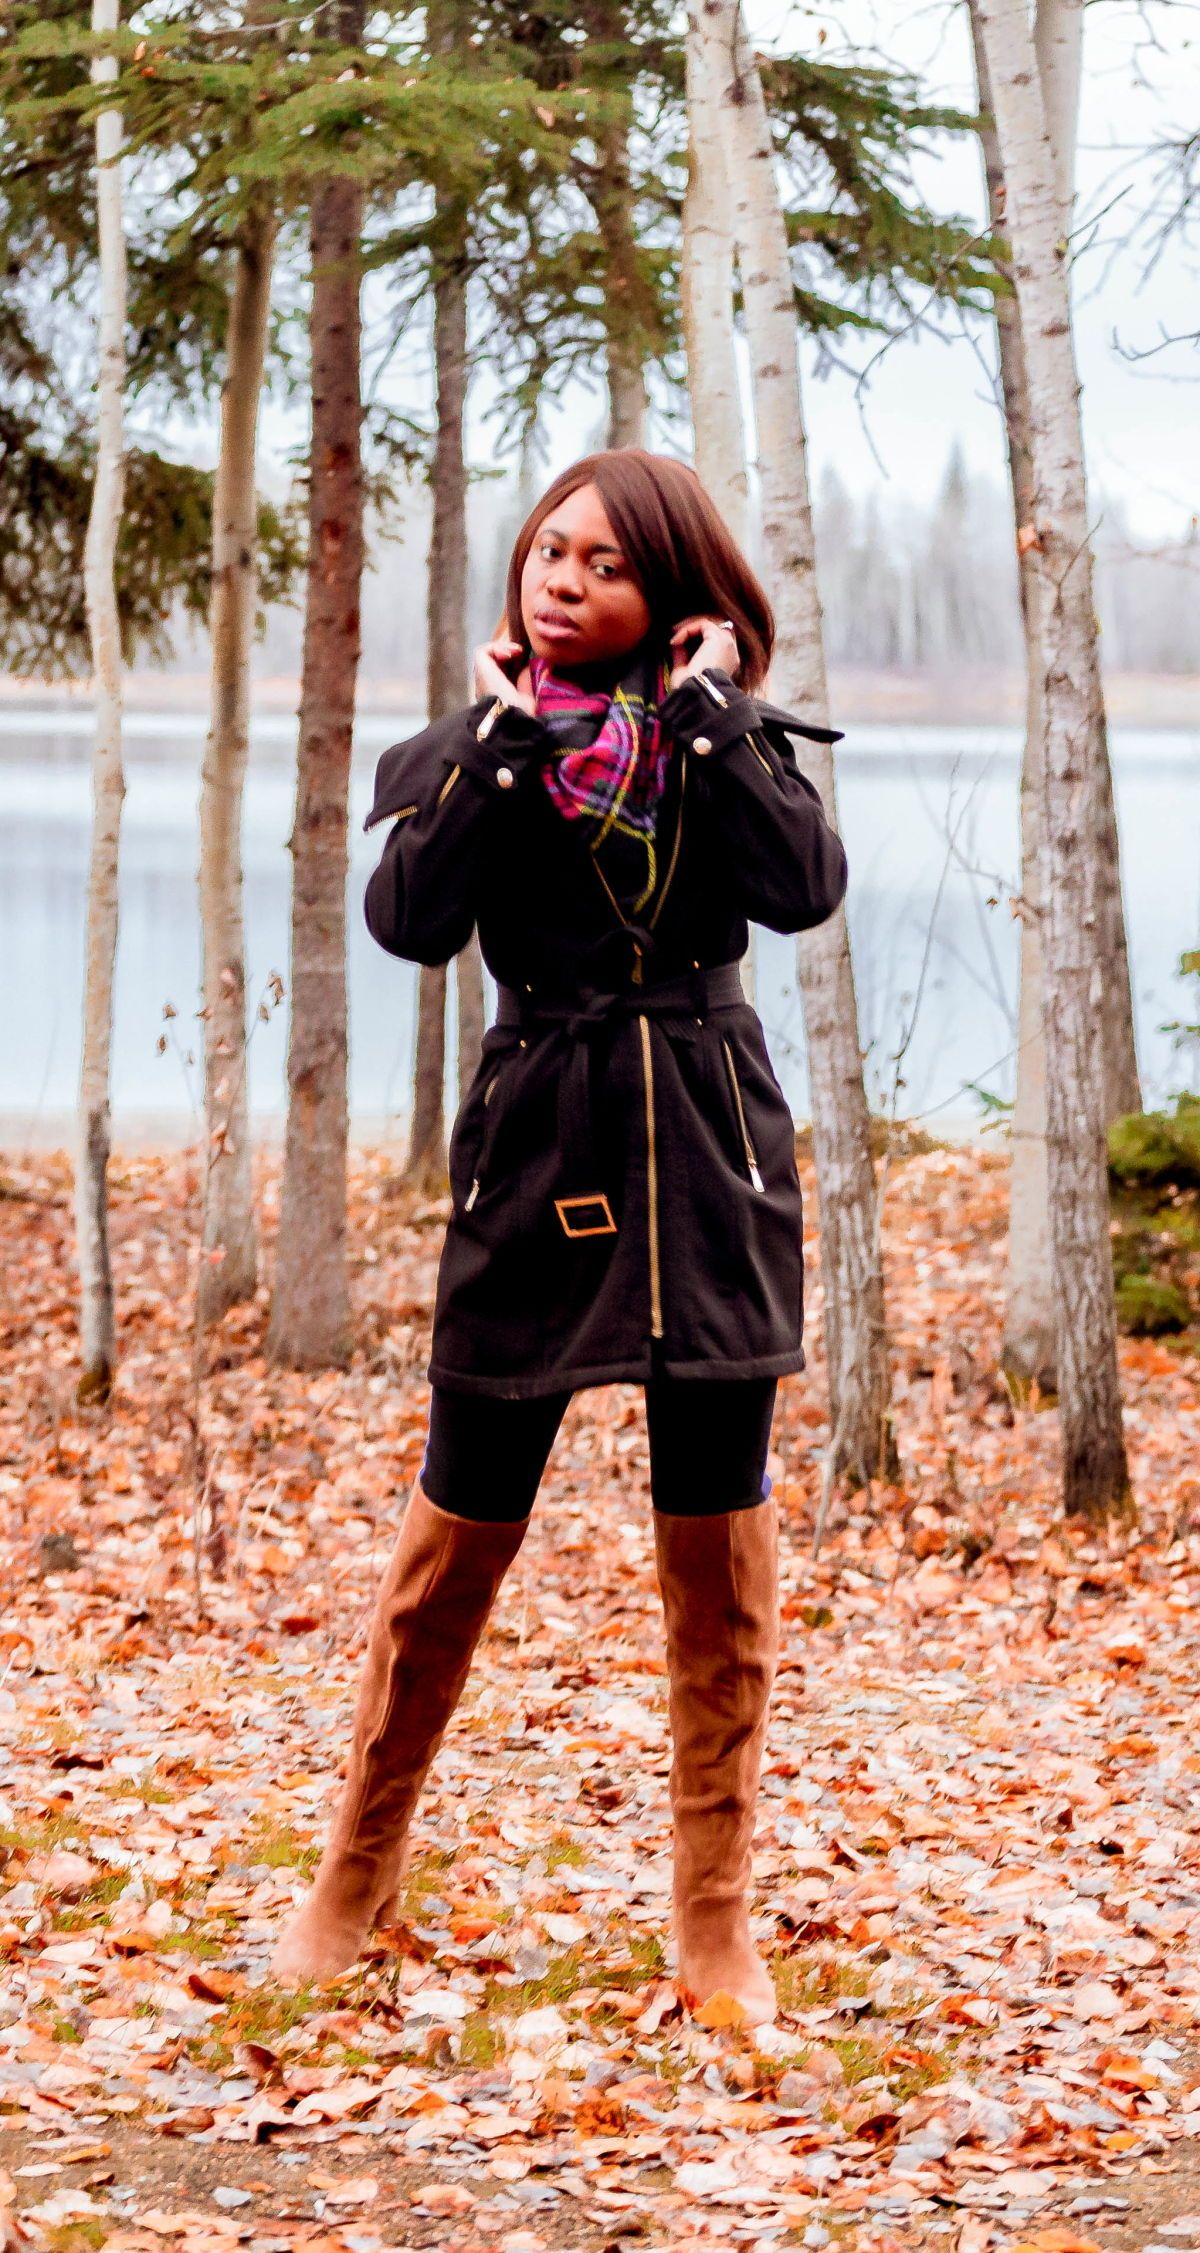 a5e3d59840c Trending  Finally found a pair of affordable over the knee boots that is  the perfect color